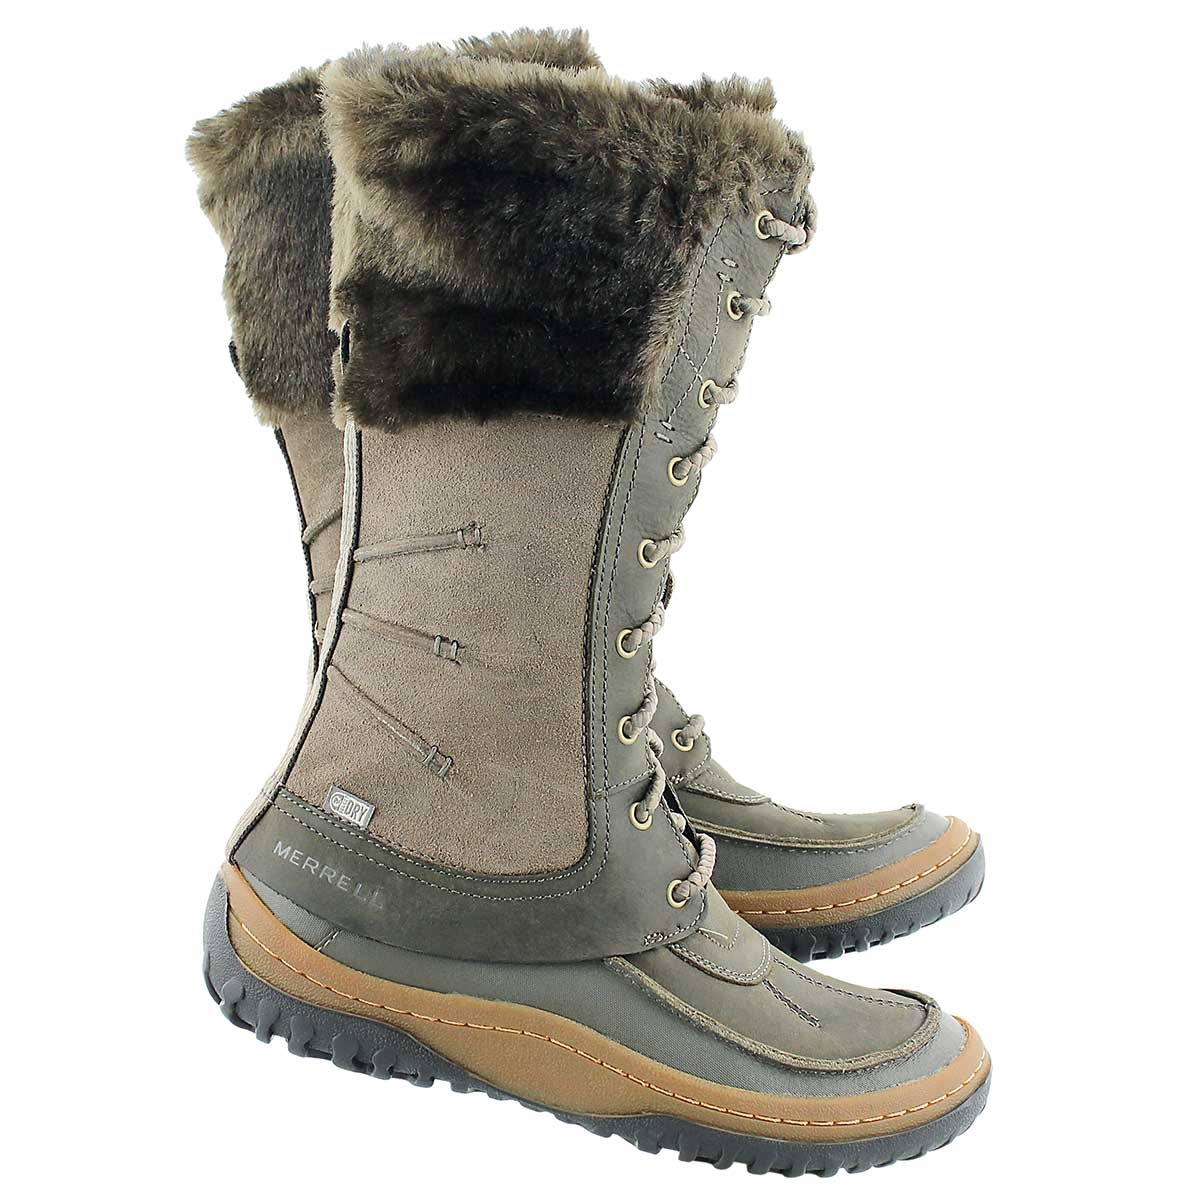 Lds Decora Prelude brn wtpf winterboot